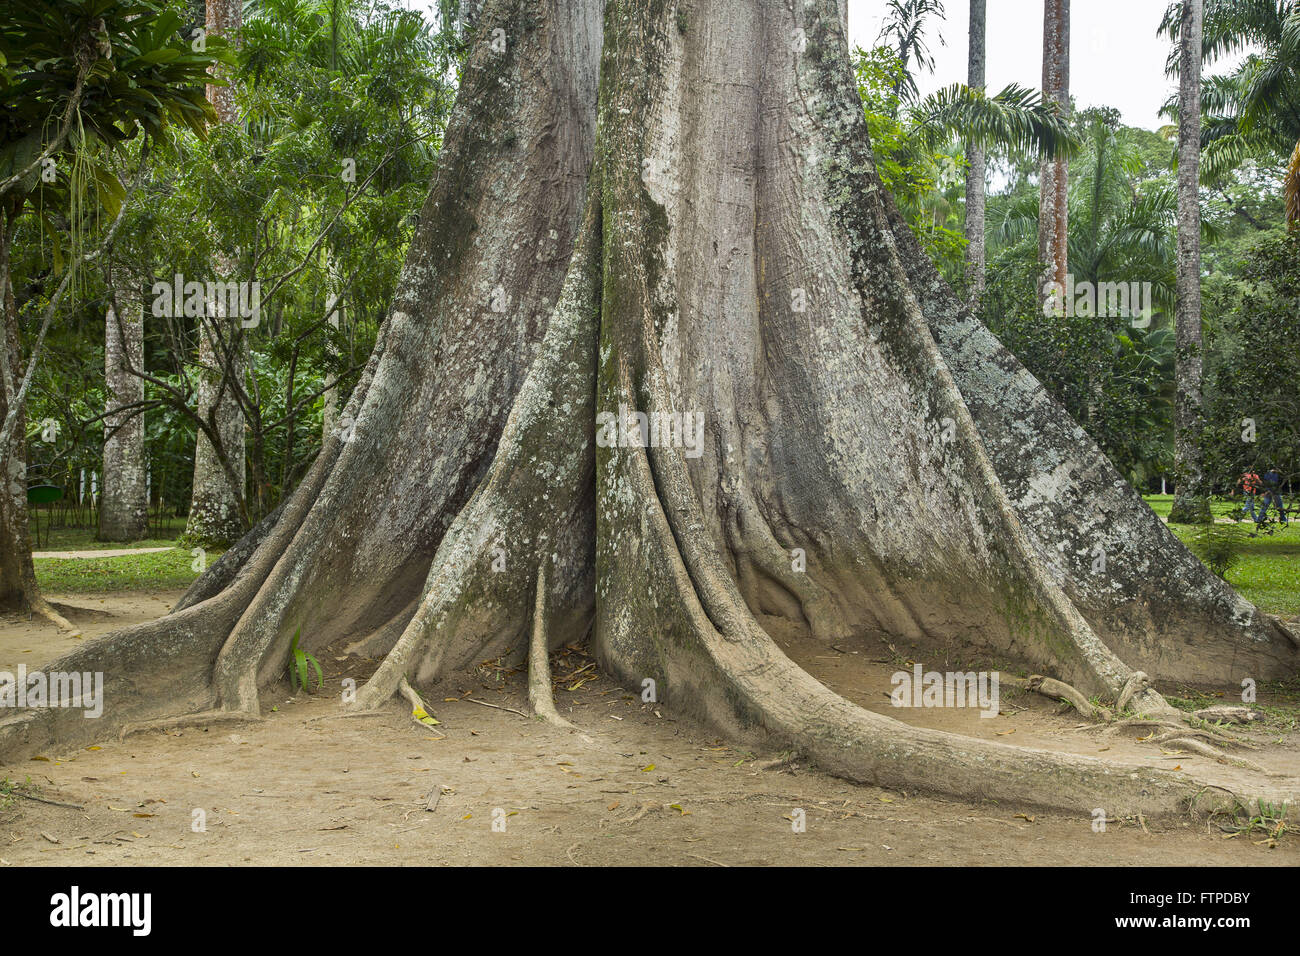 ceiba tree stockfotos ceiba tree bilder alamy. Black Bedroom Furniture Sets. Home Design Ideas